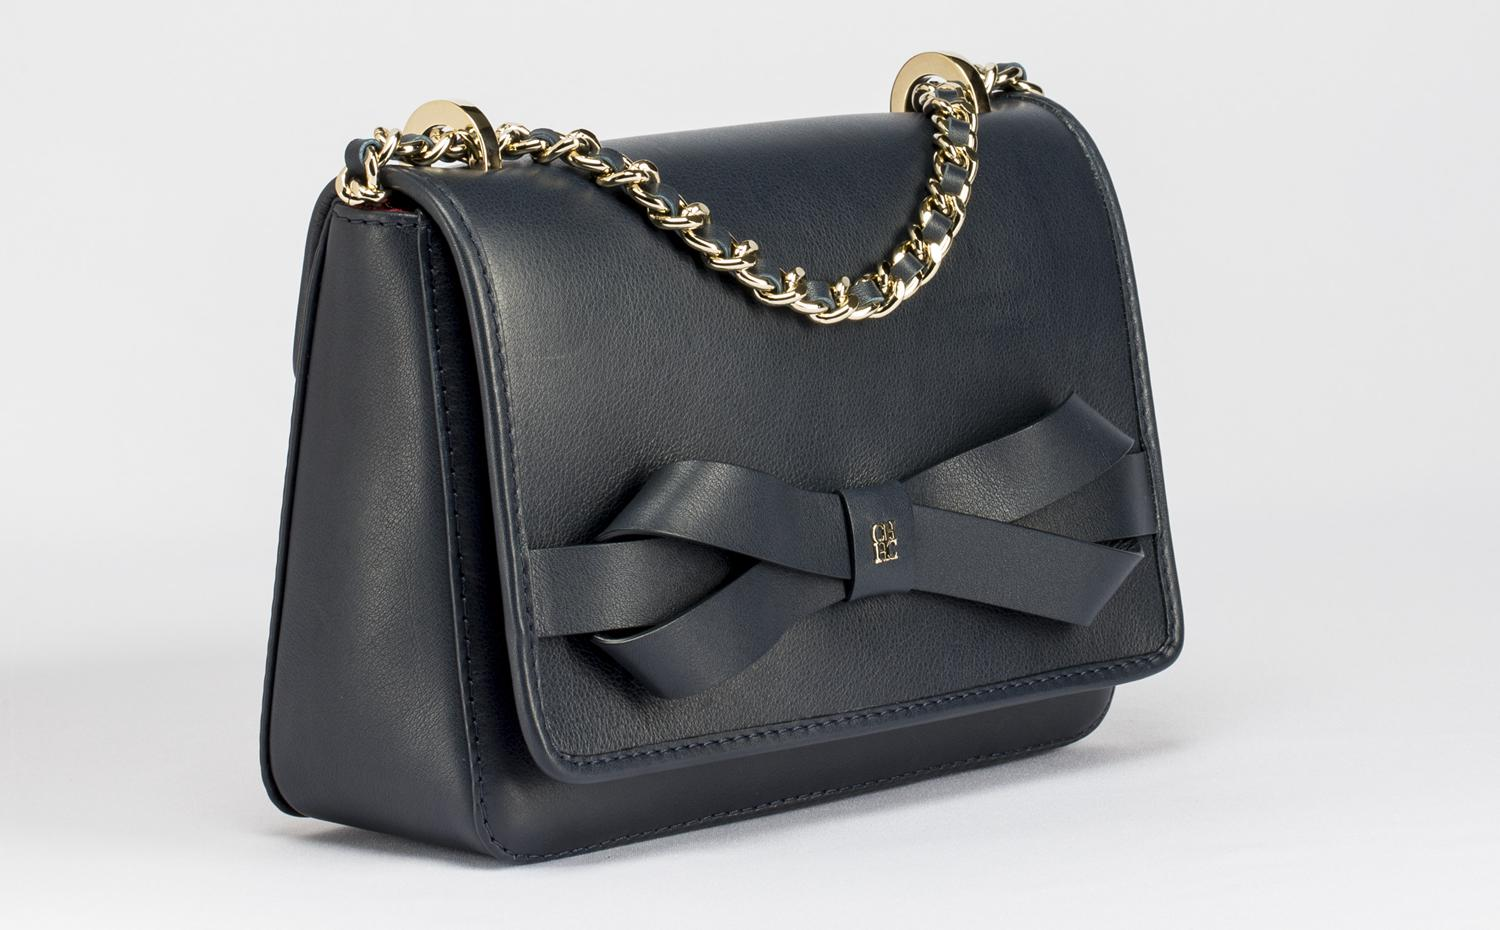 CH Carolina Herrera - MASA Bow Bag 手提包海军蓝